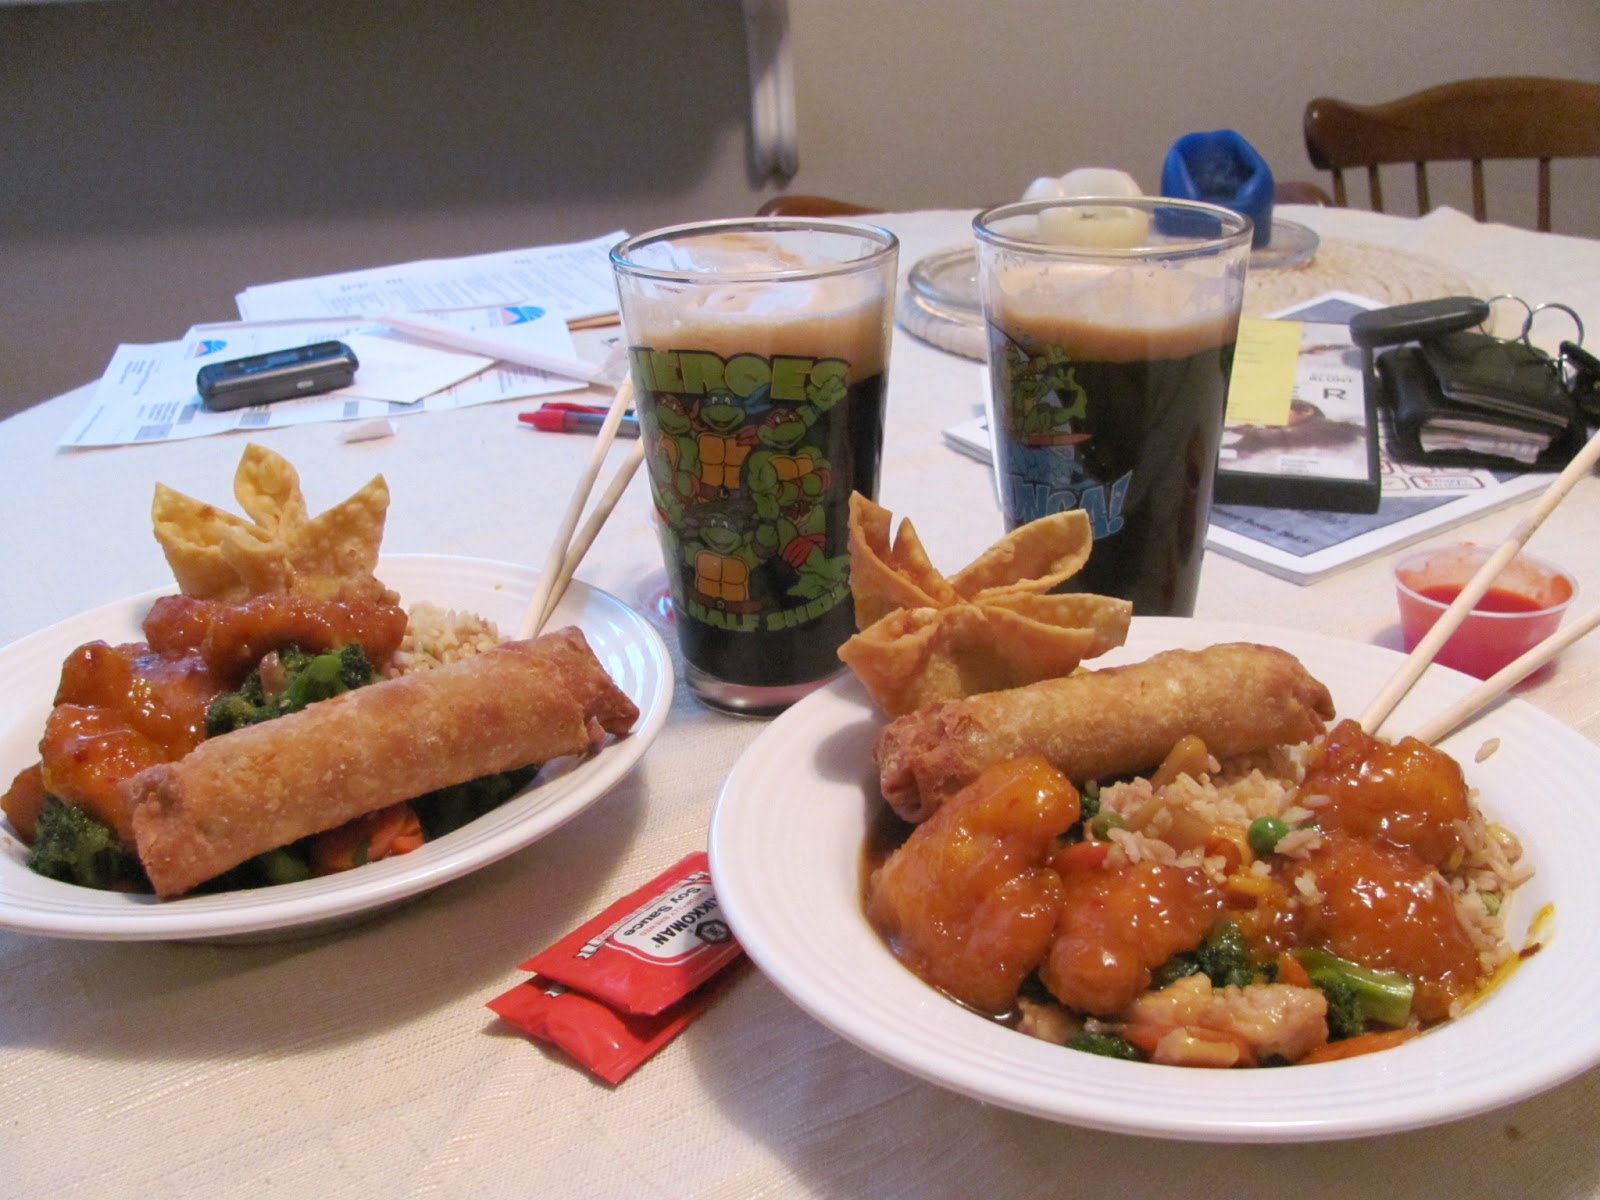 Celebrating the job offer to work in Dublin, Ireland with chinese food and homebrew beer